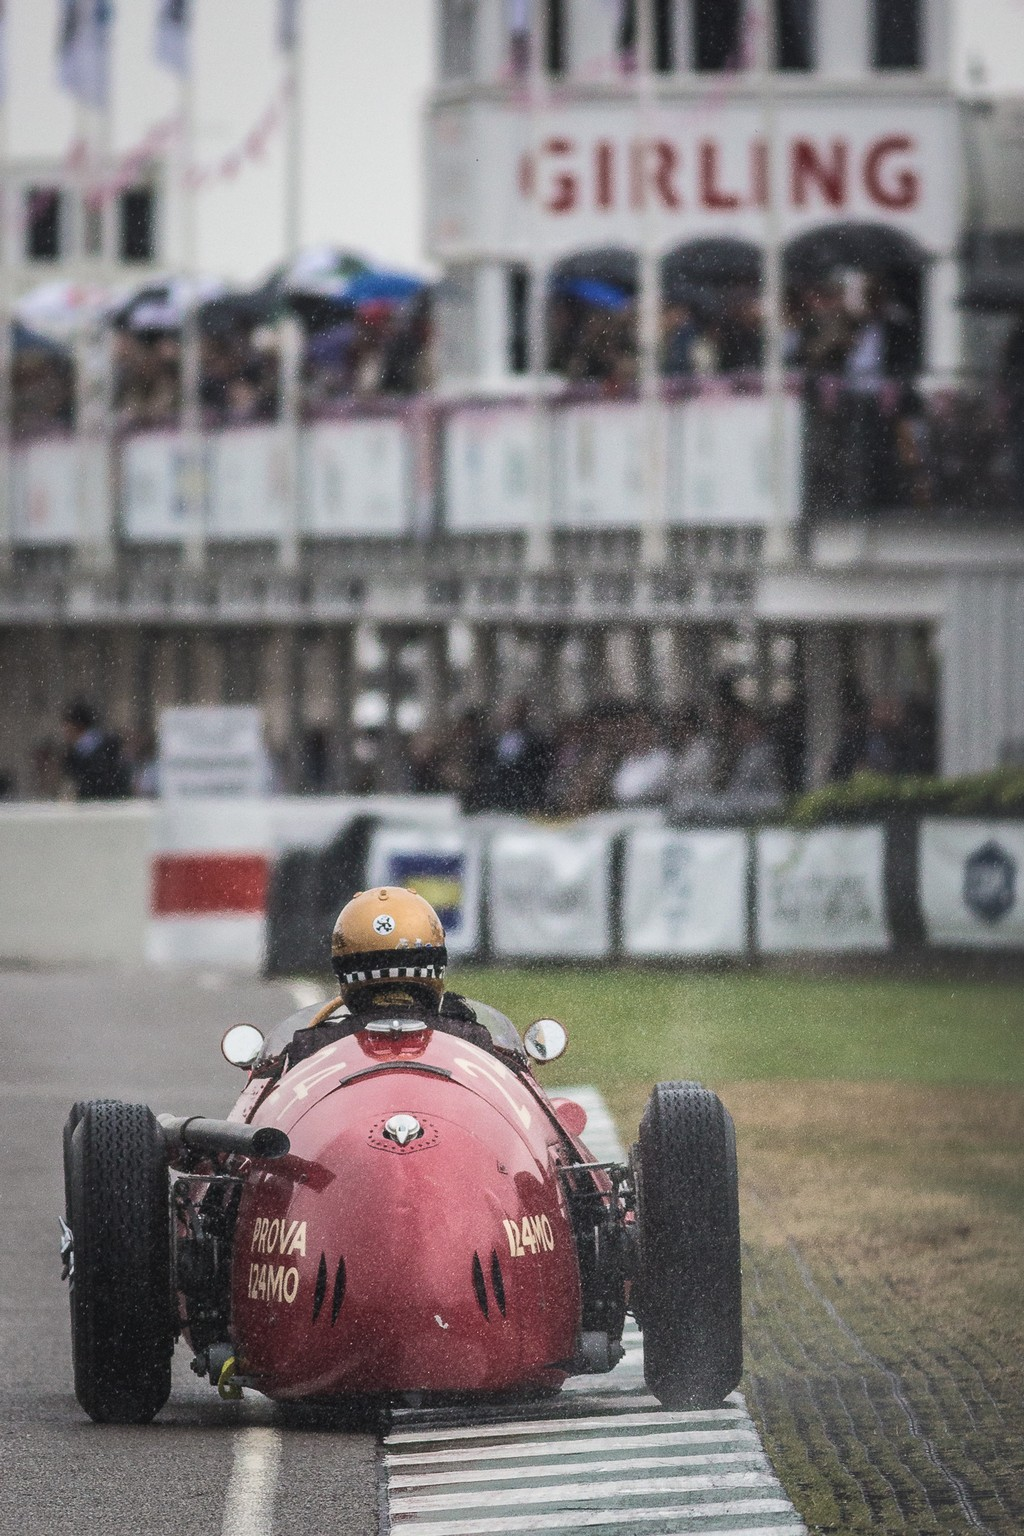 1955 Maserati 250F kicking up spray as it exits the final chicane